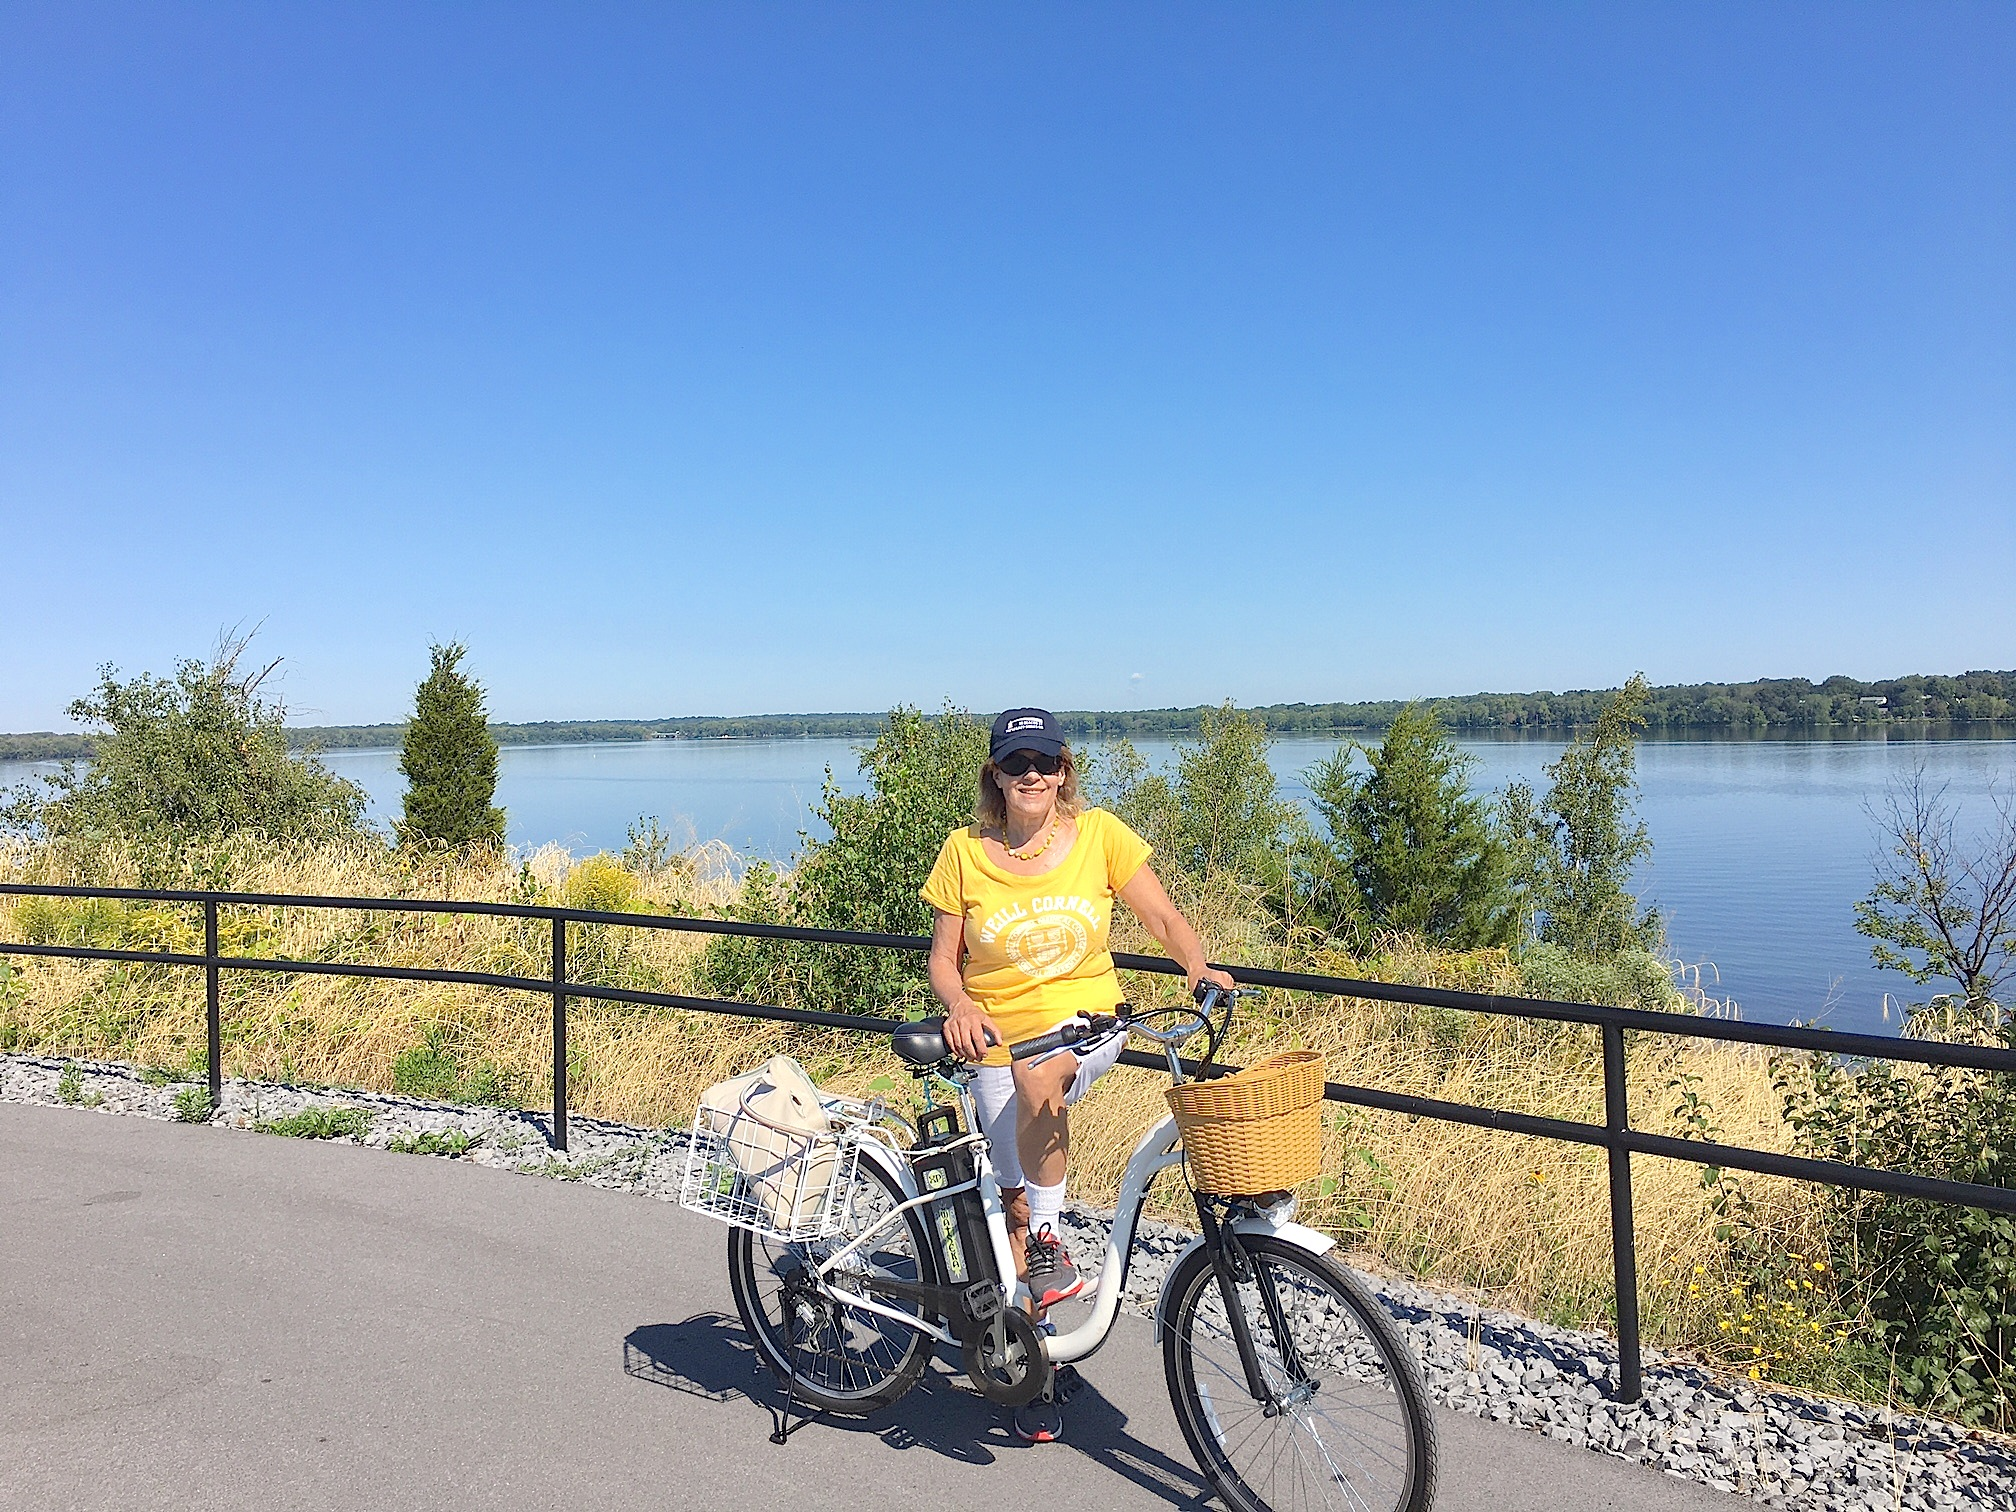 Bike trip around Onondaga Lake on the new bike path, Labor Day, 2016